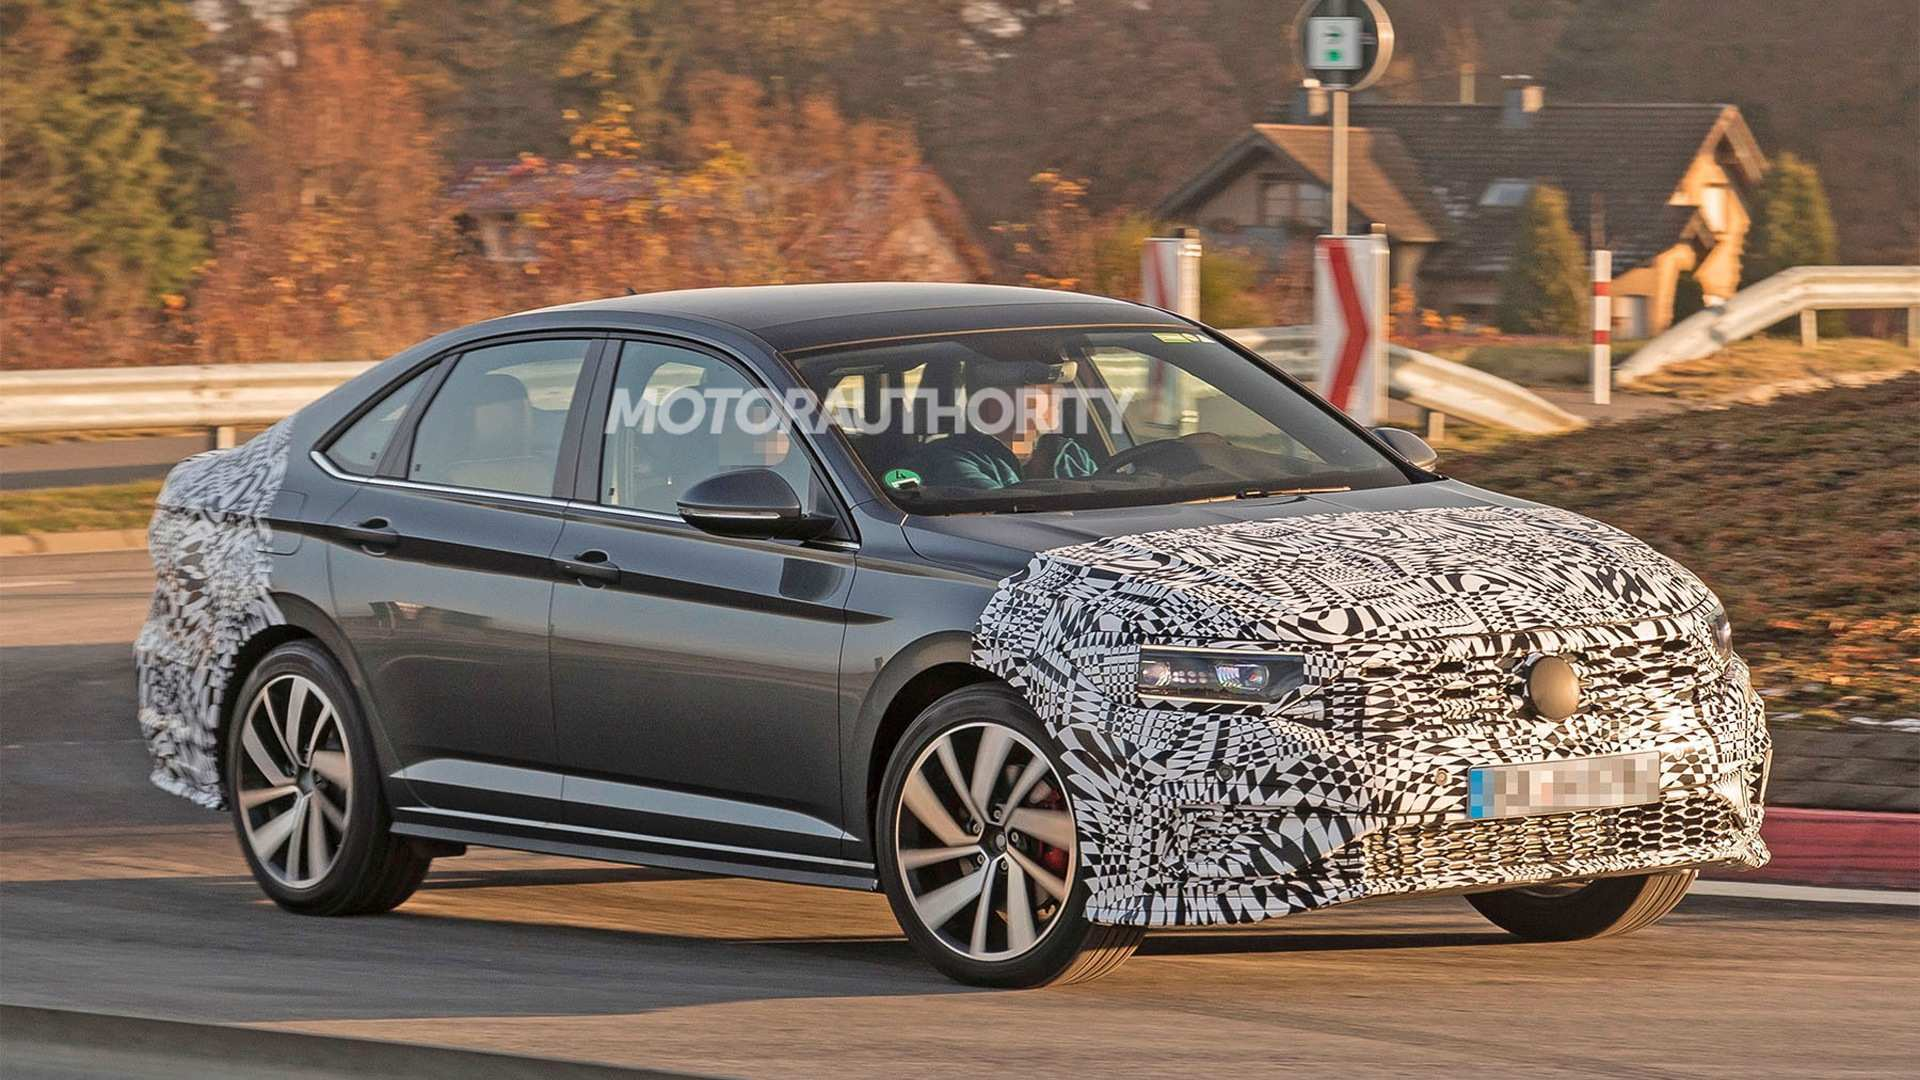 35 New 2020 Vw Jetta Picture by 2020 Vw Jetta